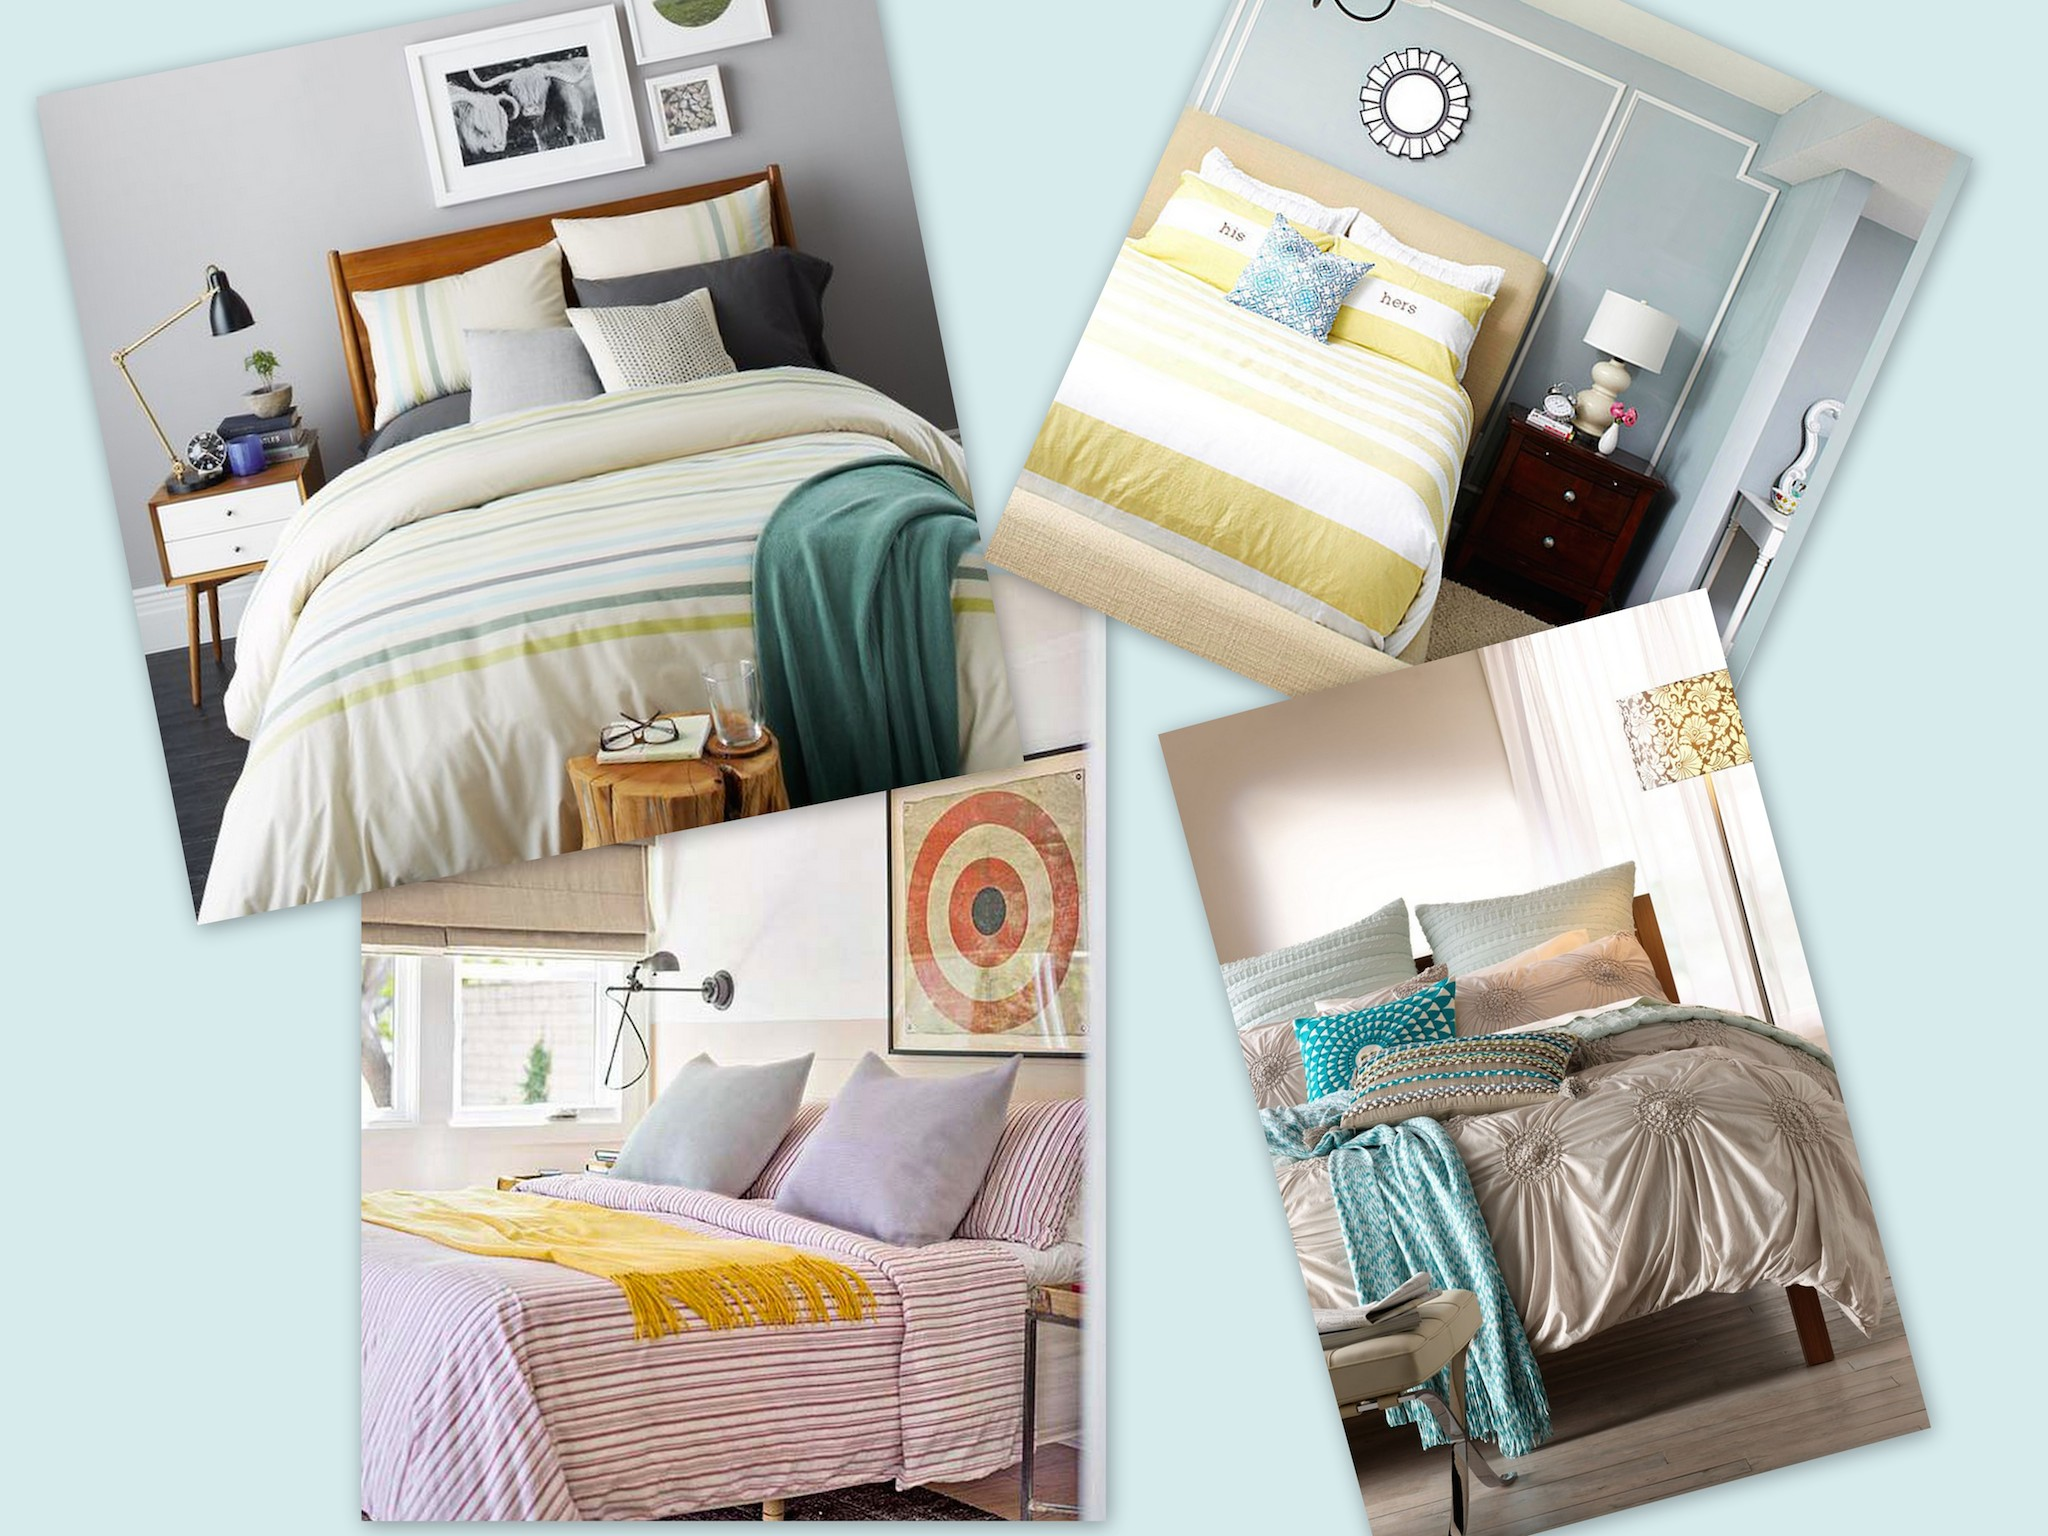 Inspiration d co literie color e le blog de n rolile for Le mag deco literie